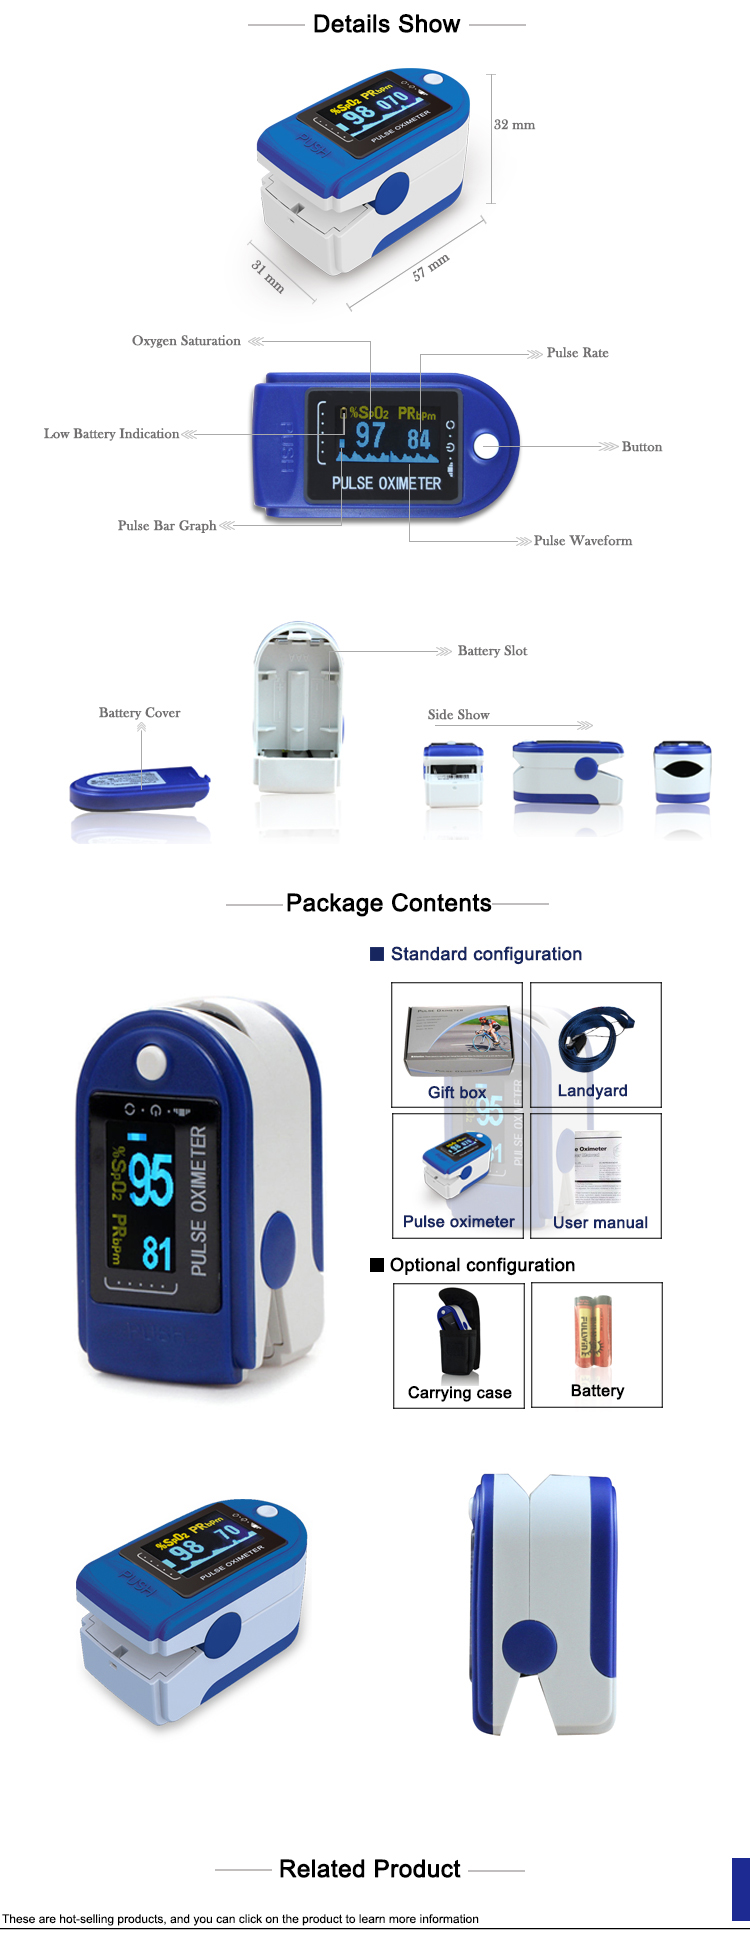 CMS50D Pulse Oximeter Clear Display Health Care - Blue